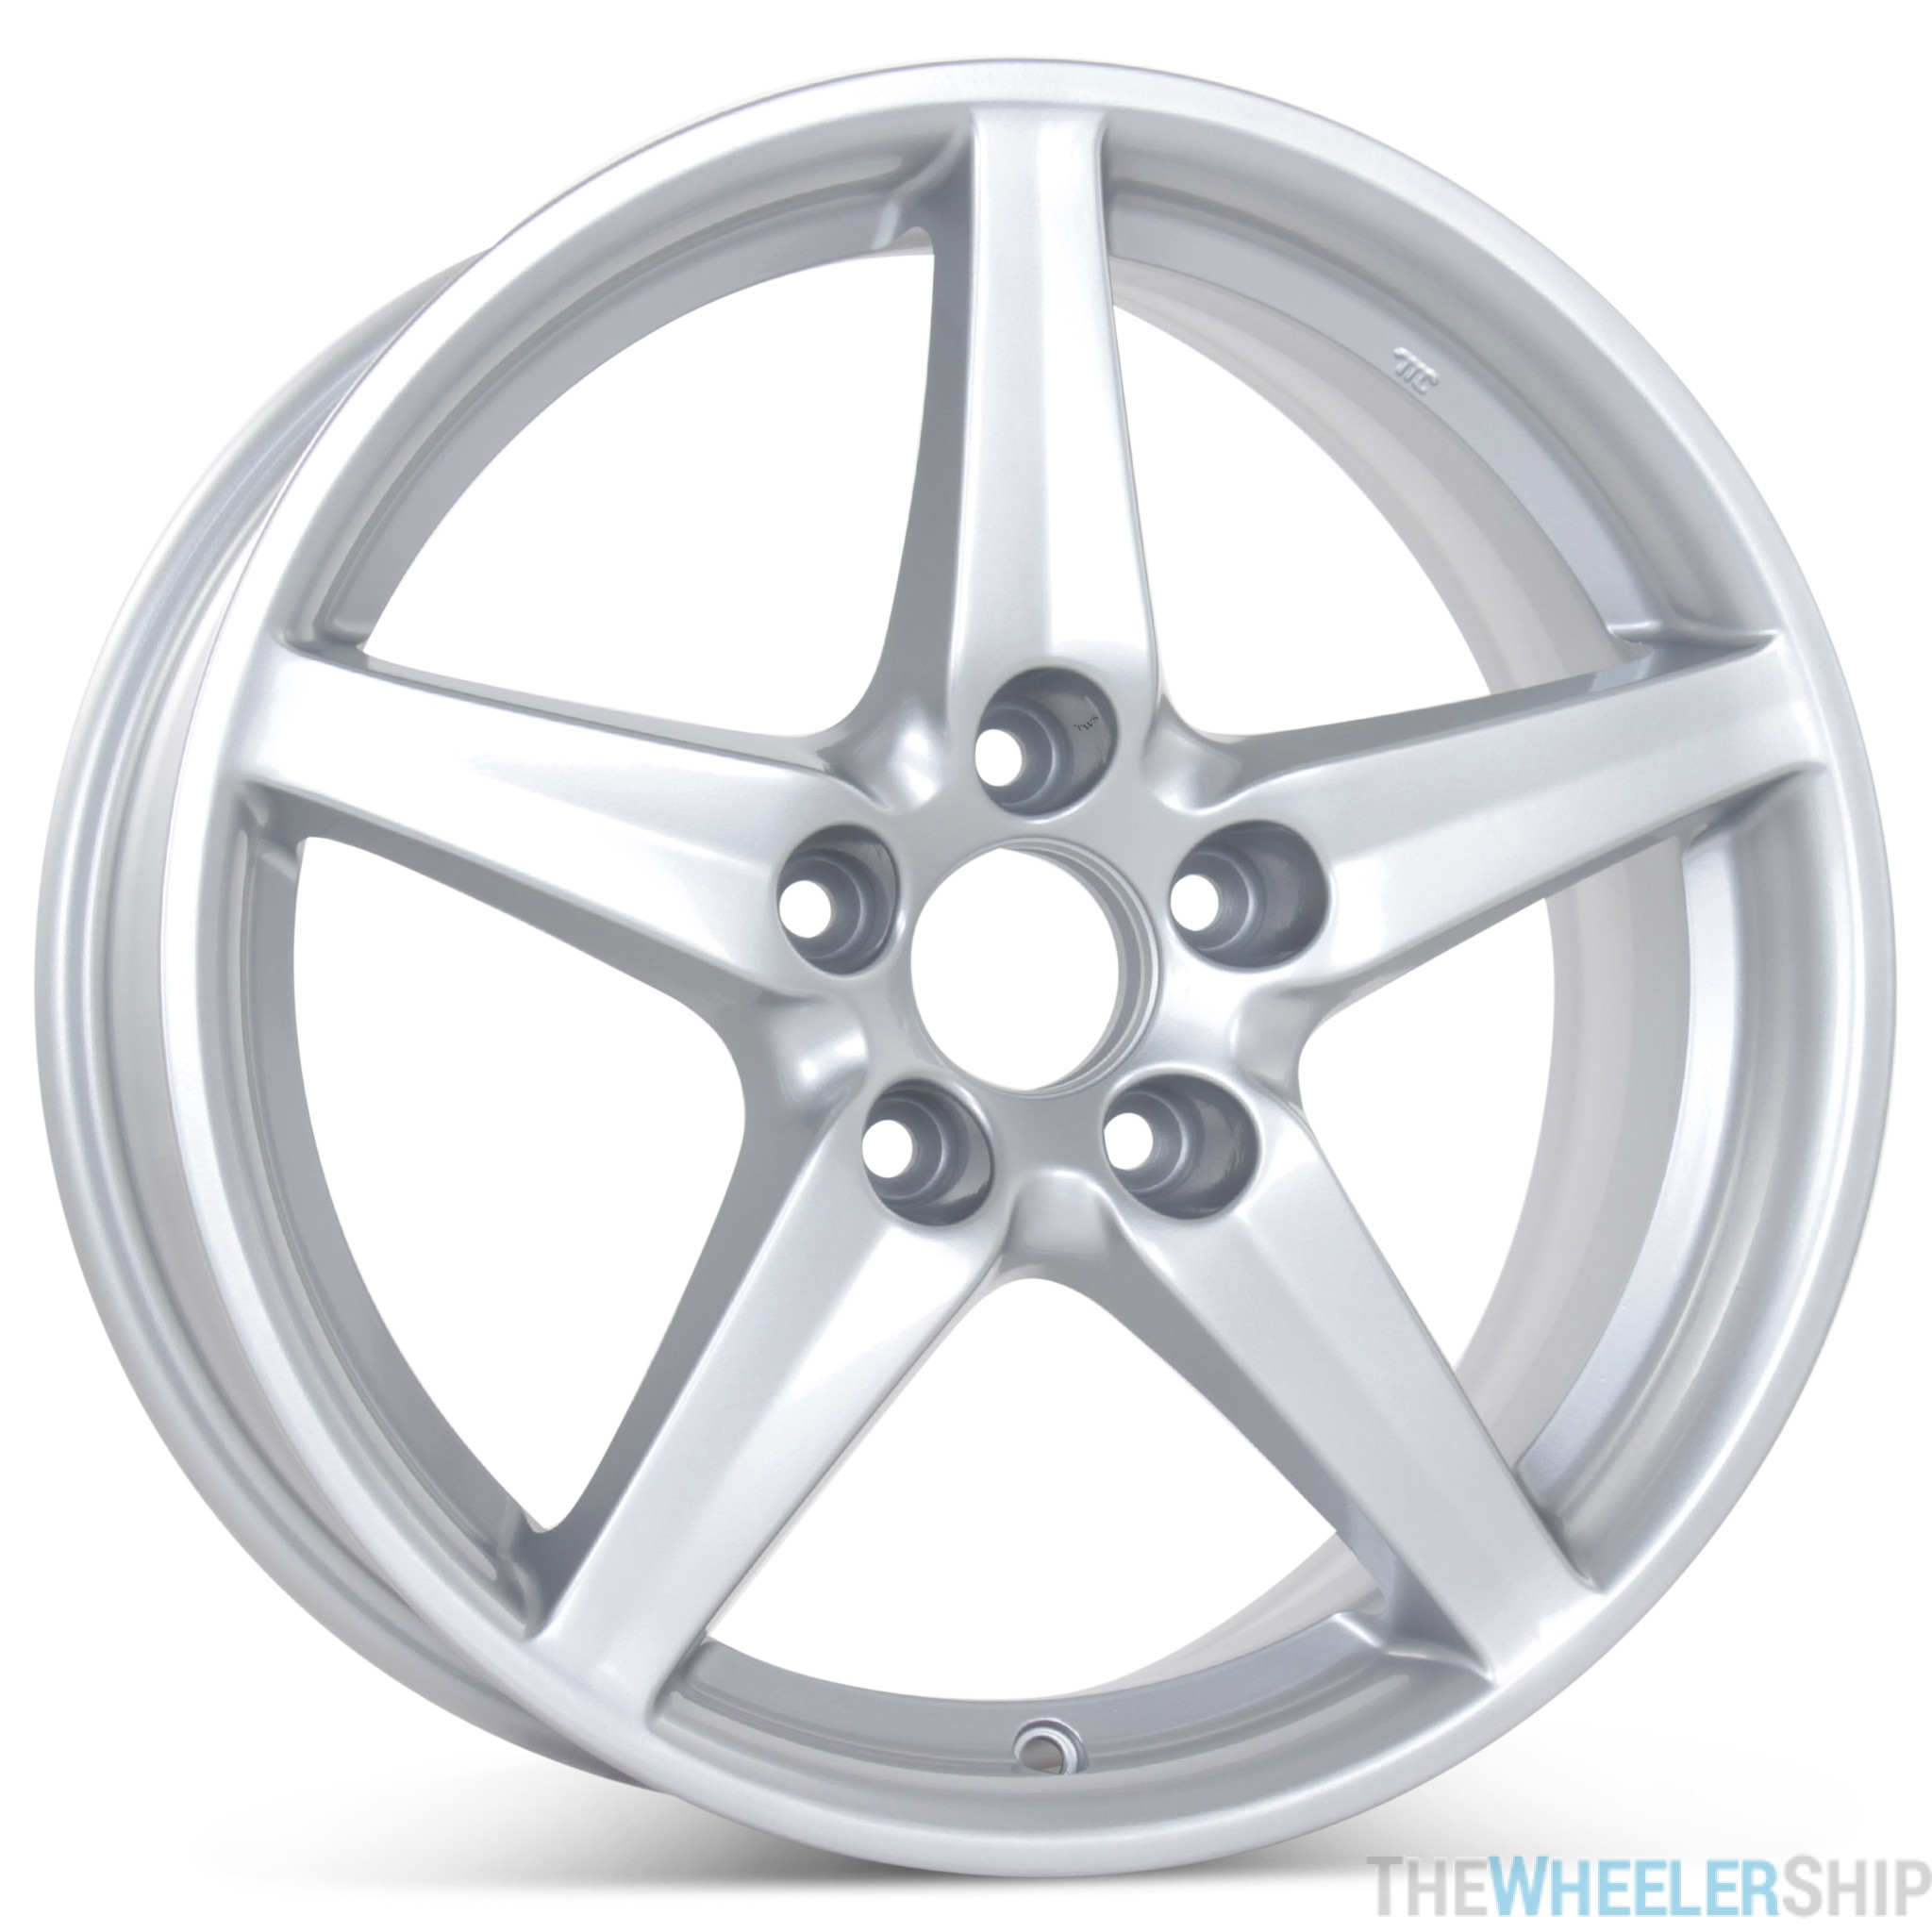 New 17 Alloy Replacement Wheel For Acura Rsx Type S 2005 2006 Rim 71752